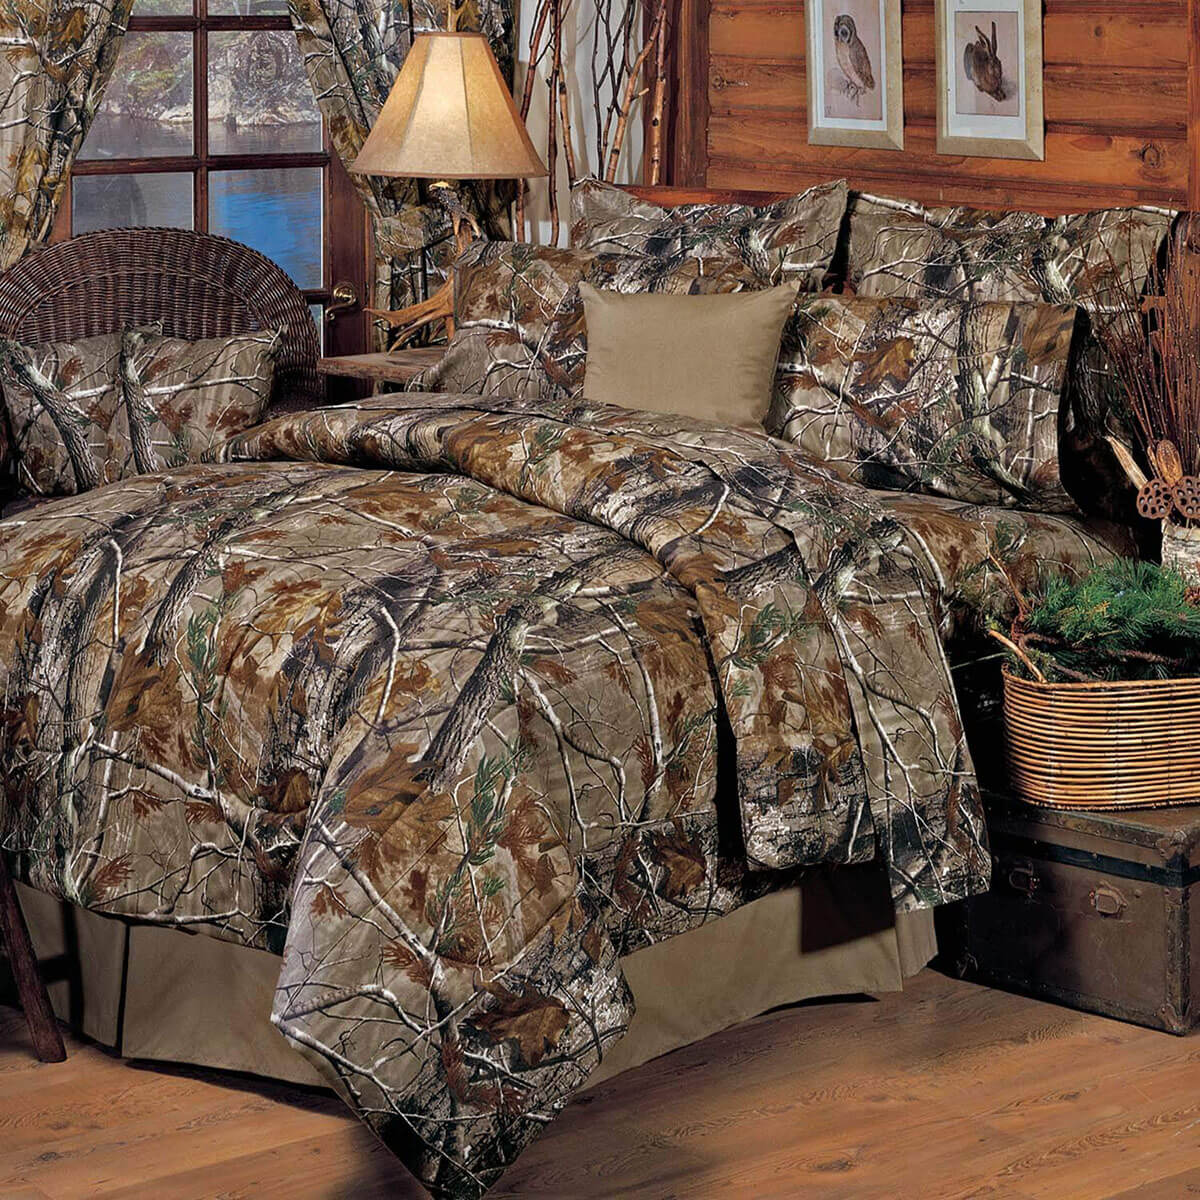 Stand Out by Blending in With Camo Bedding